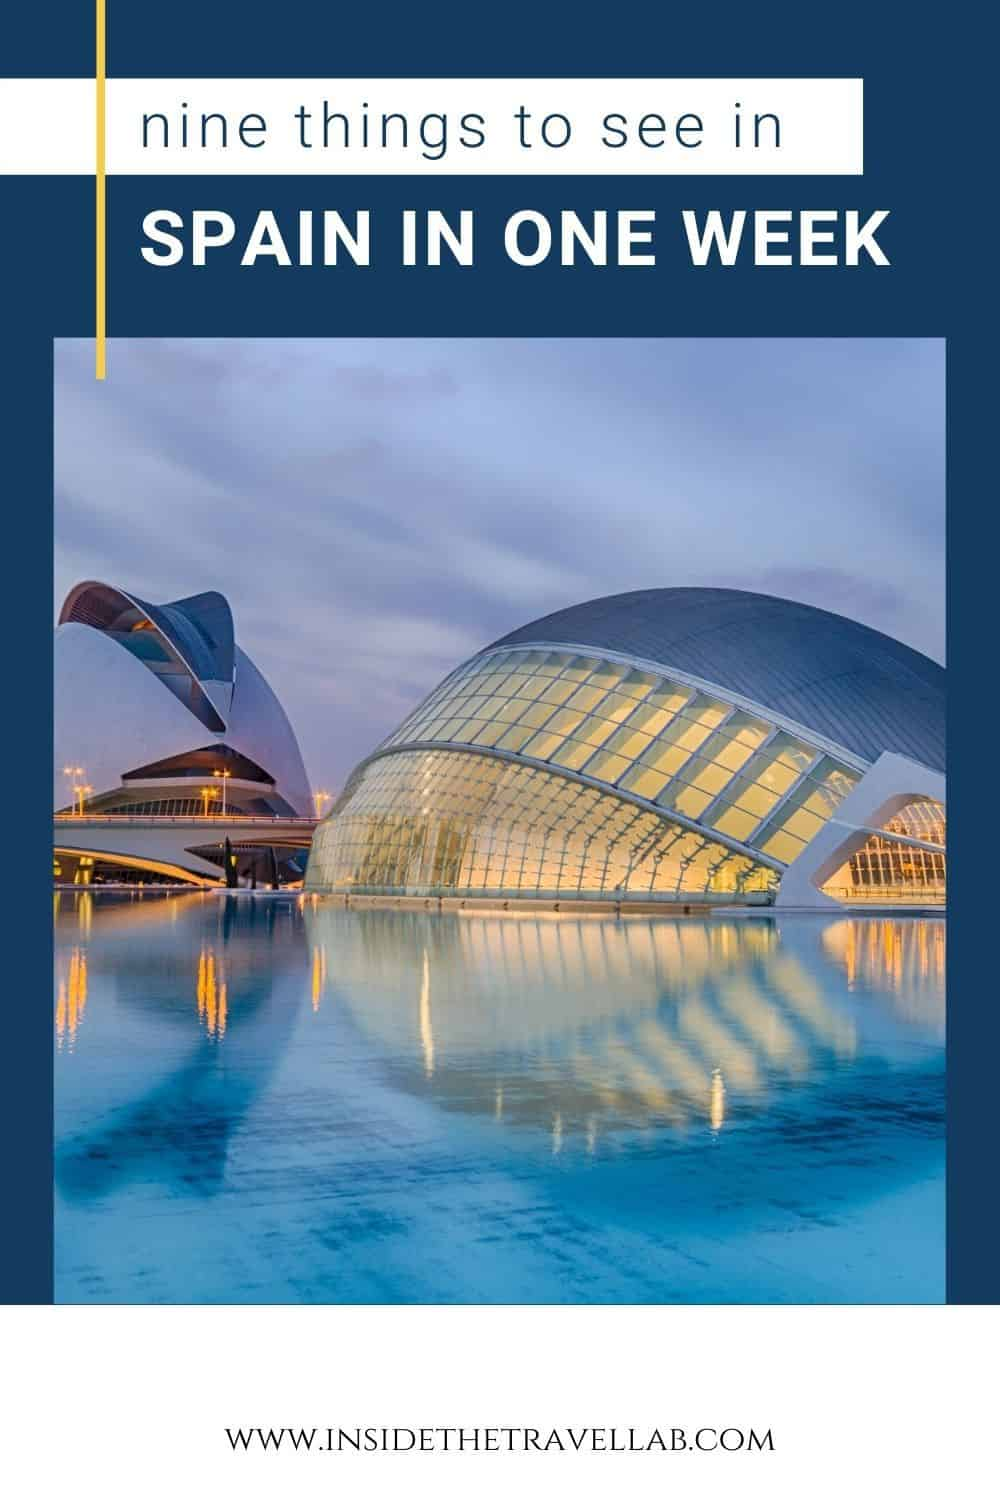 How to see Spain in a week - view of Valencia Arts & Sciences Building